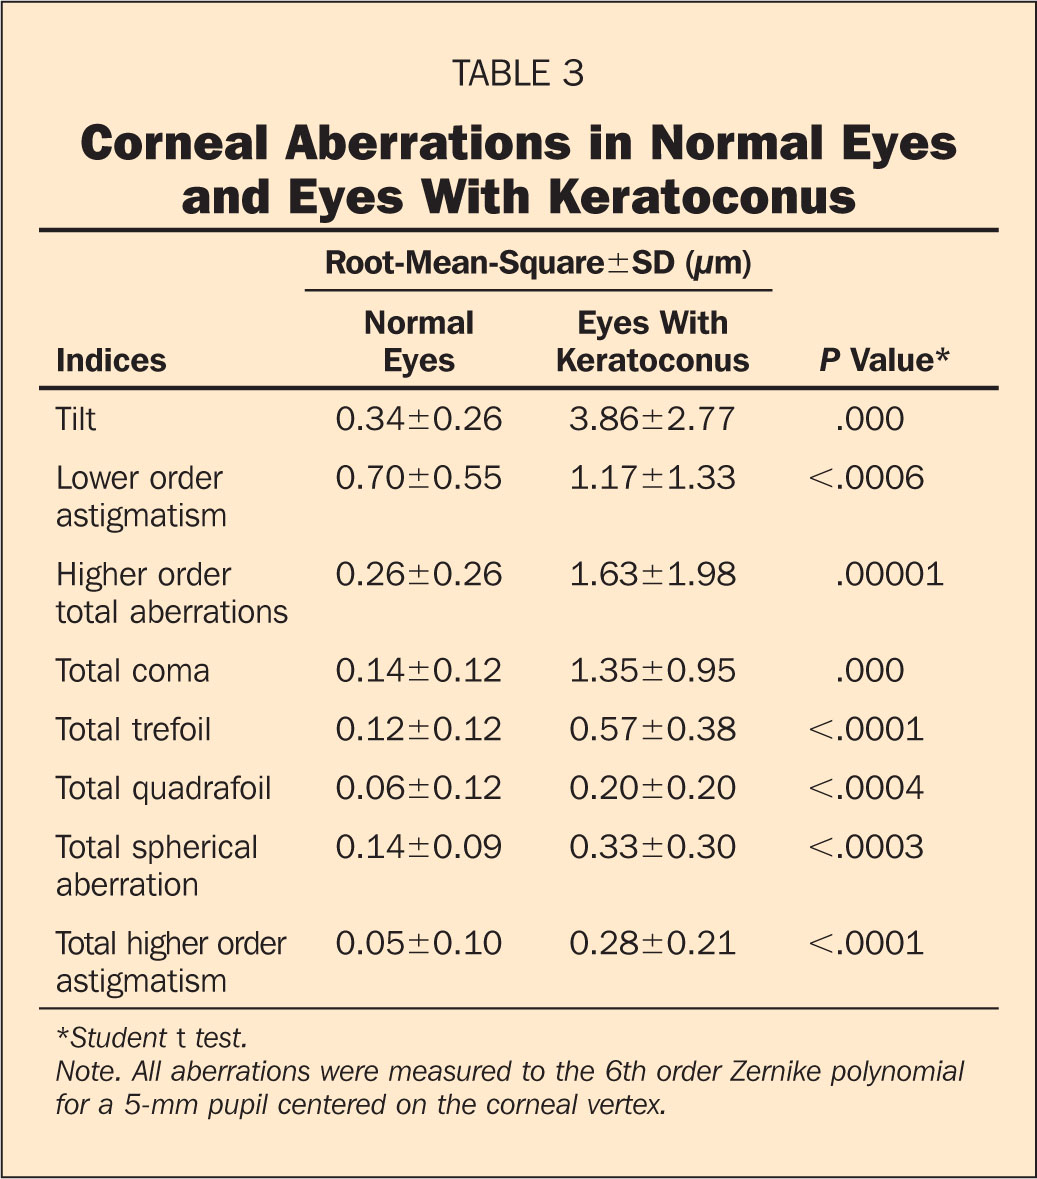 Corneal Aberrations in Normal Eyes and Eyes with Keratoconus